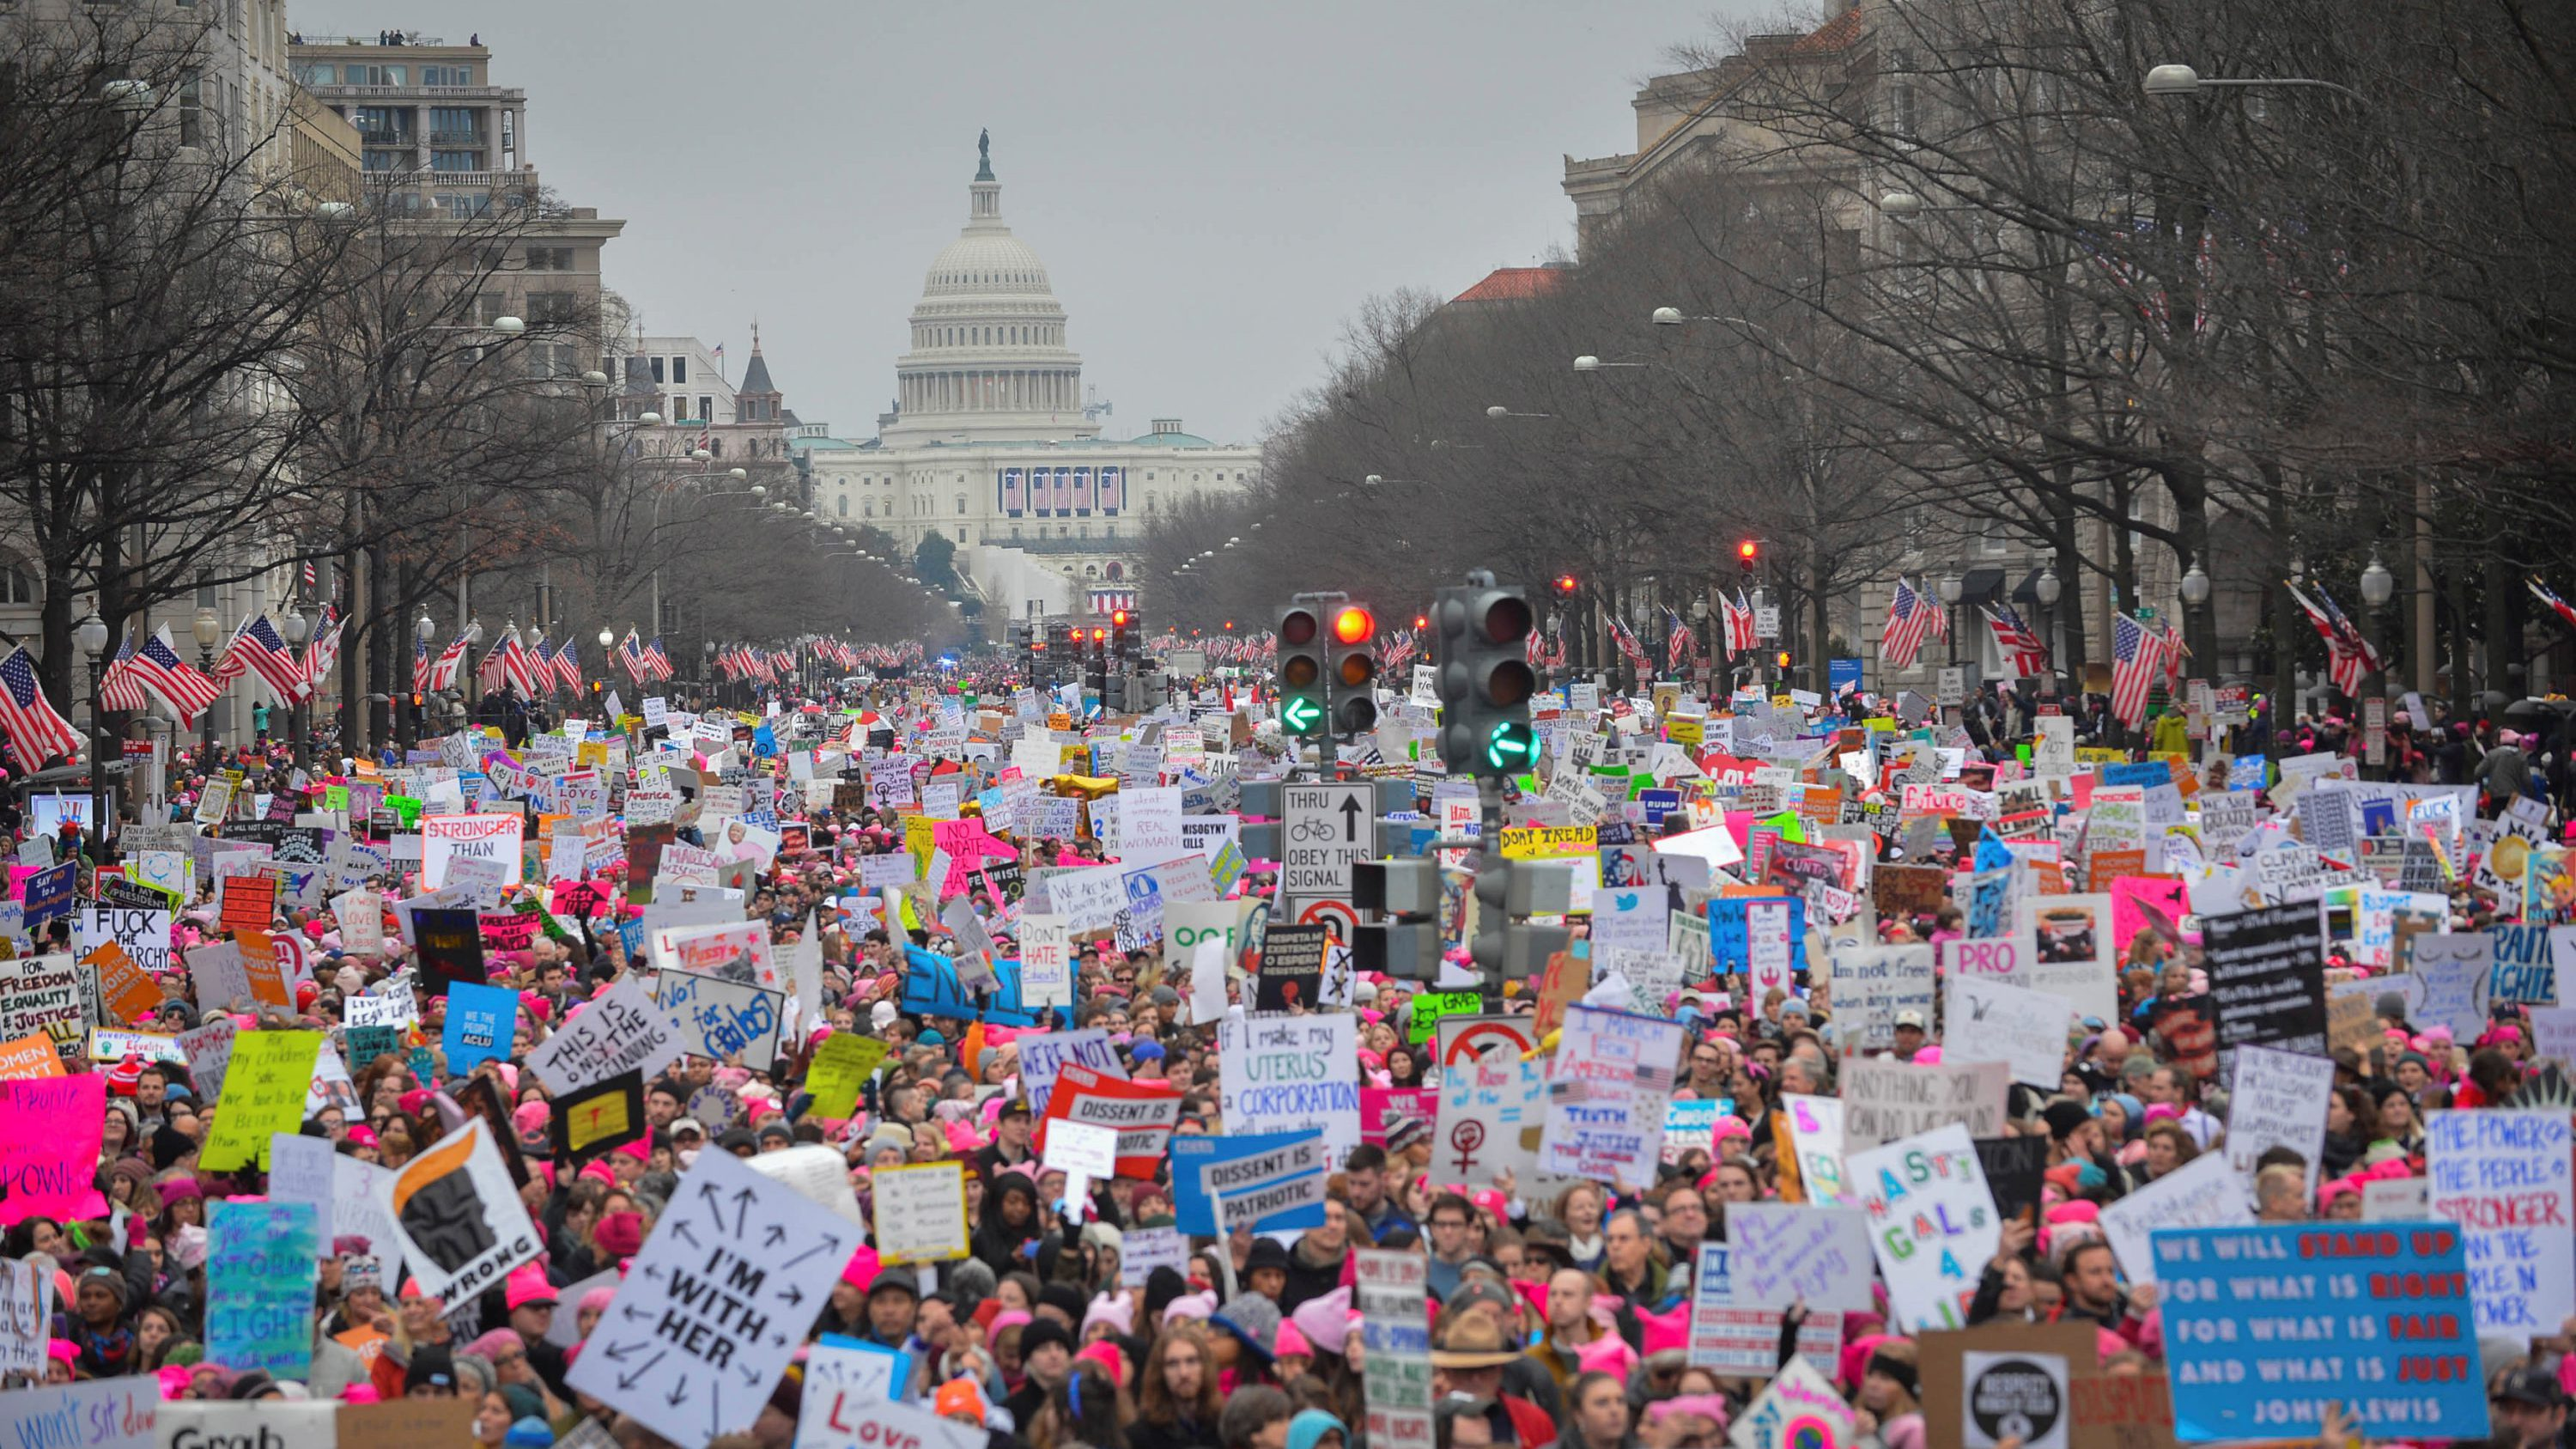 Hundreds of thousands march down Pennsylvania Avenue during the Women's March in Washington, DC, U.S., January 21, 2017.